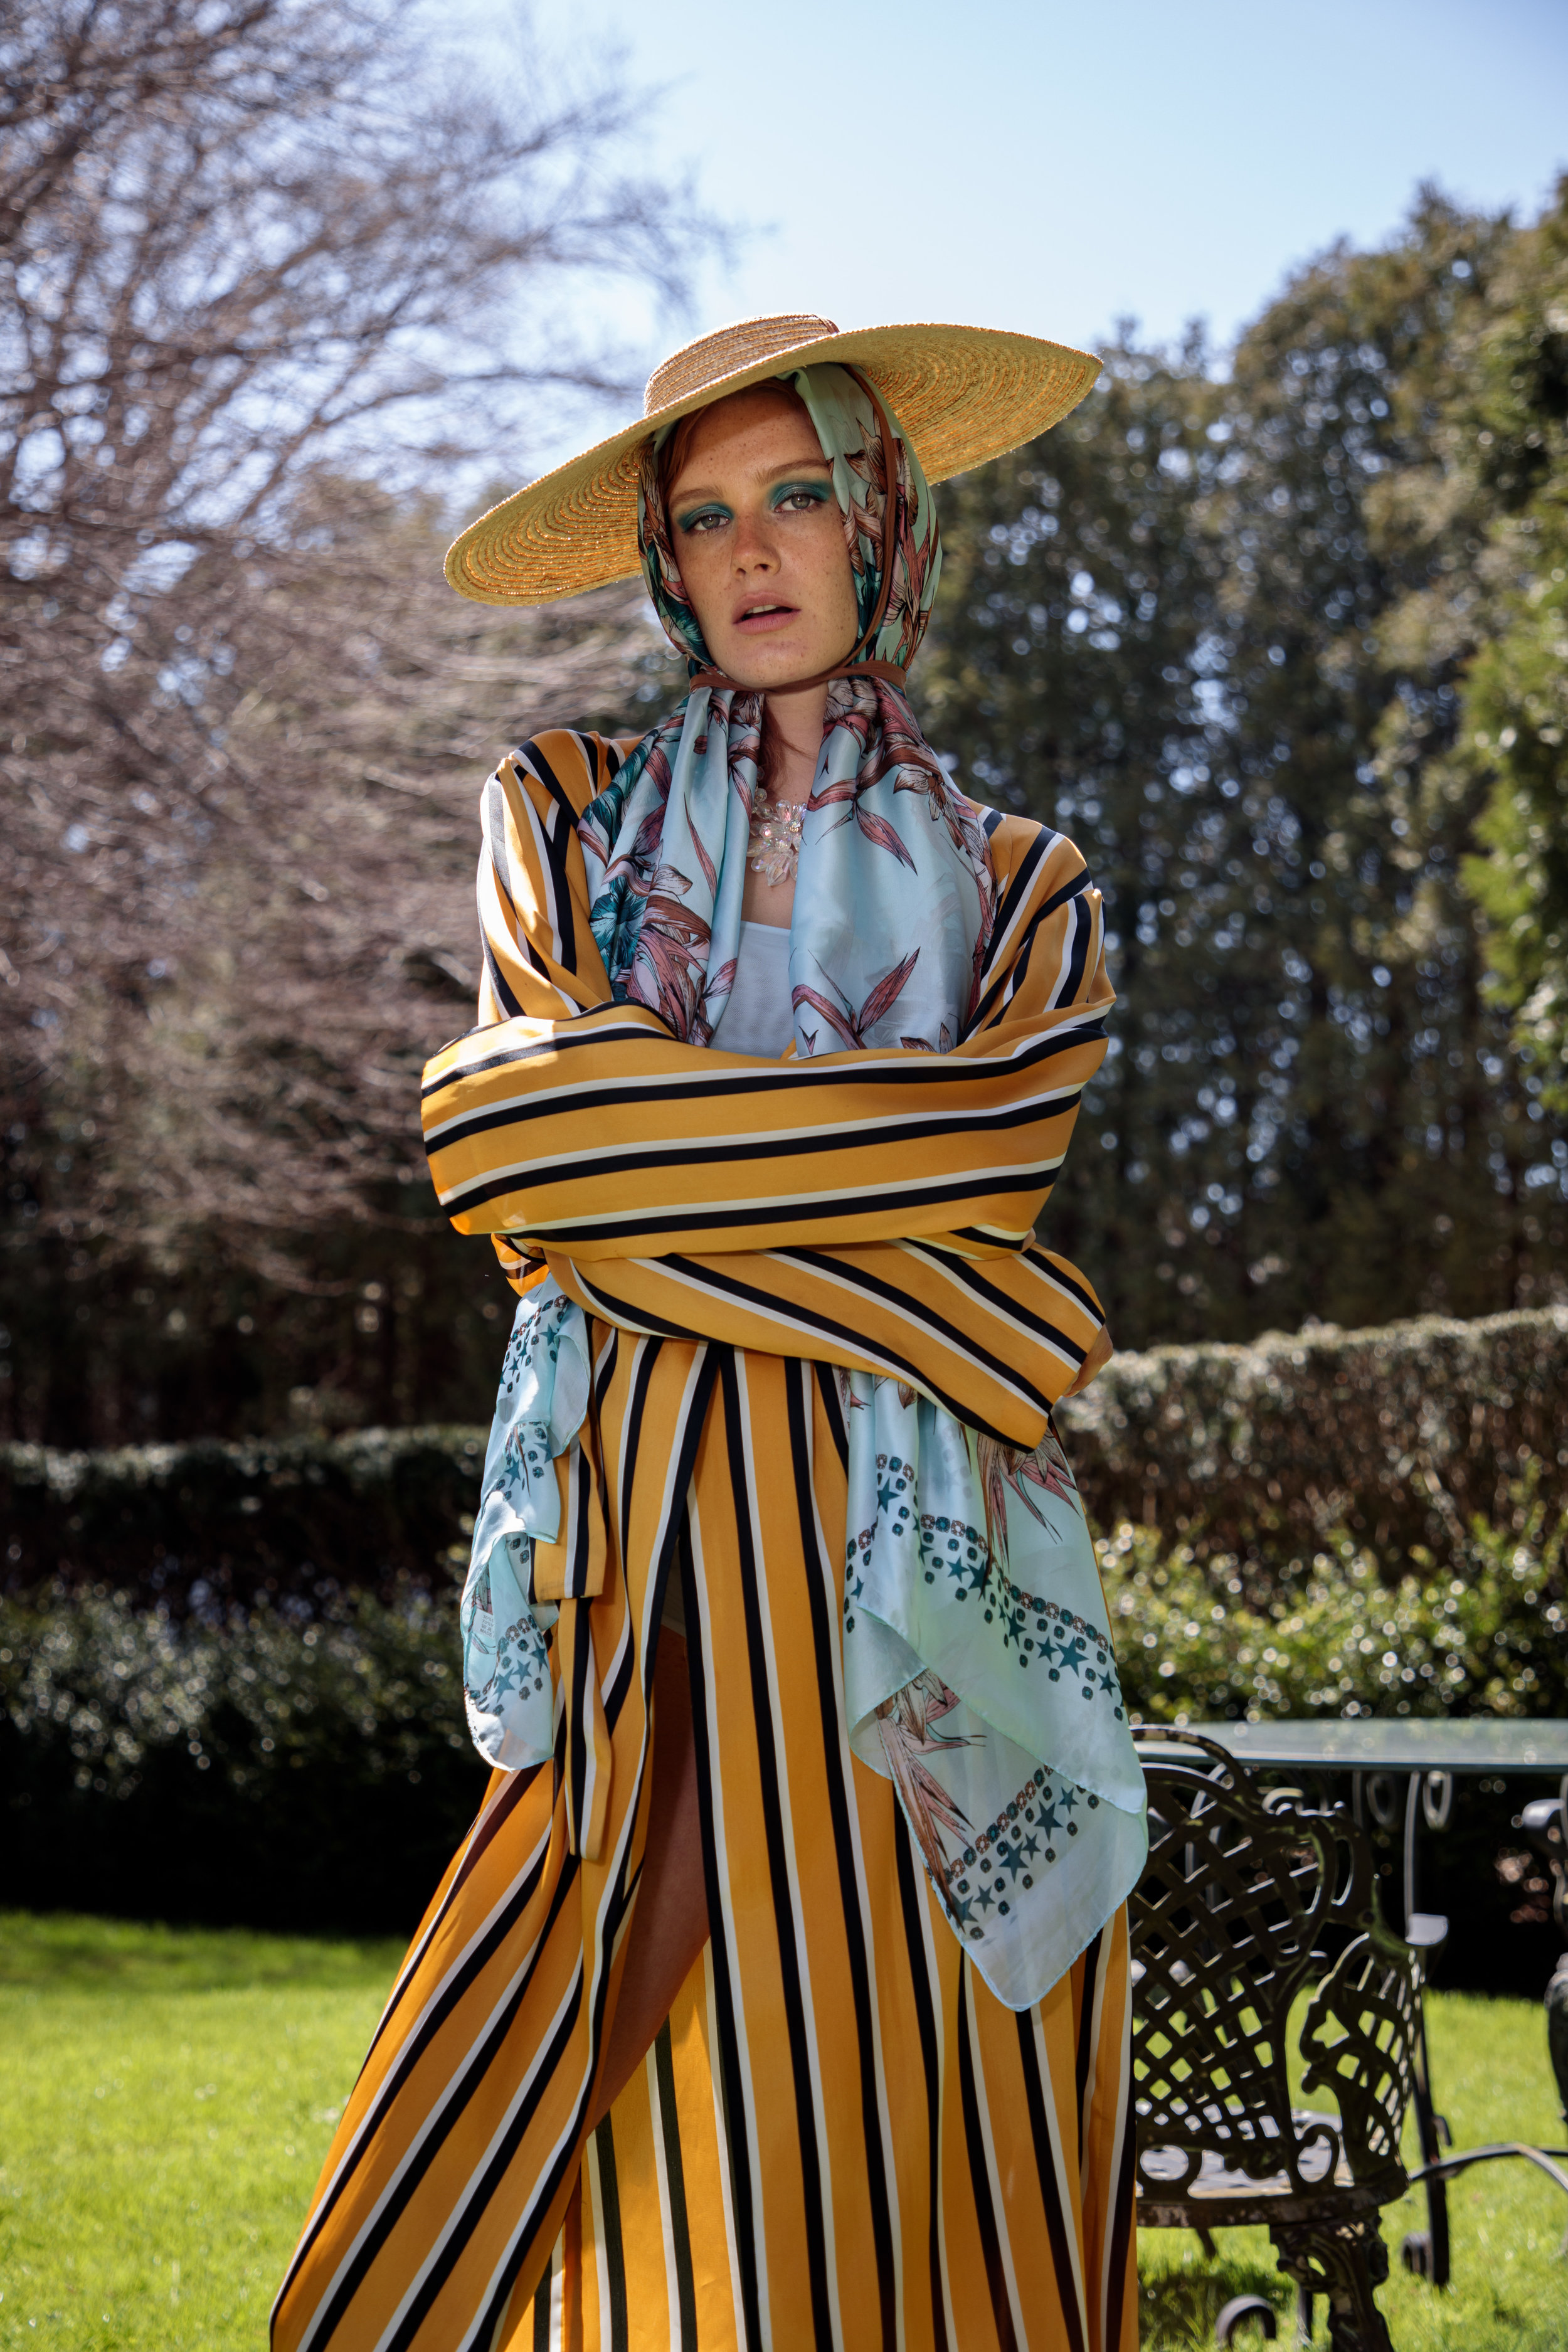 LUCY'S MAGAZINE - STORY [WEEKEND IN HAMPTON]'F.F.M.T. FEMME FATALE MEETS TOMBOY' SS18 CHAEnewyork Collection was featured on Lucy's Magazine- Yellow silk stripe robe